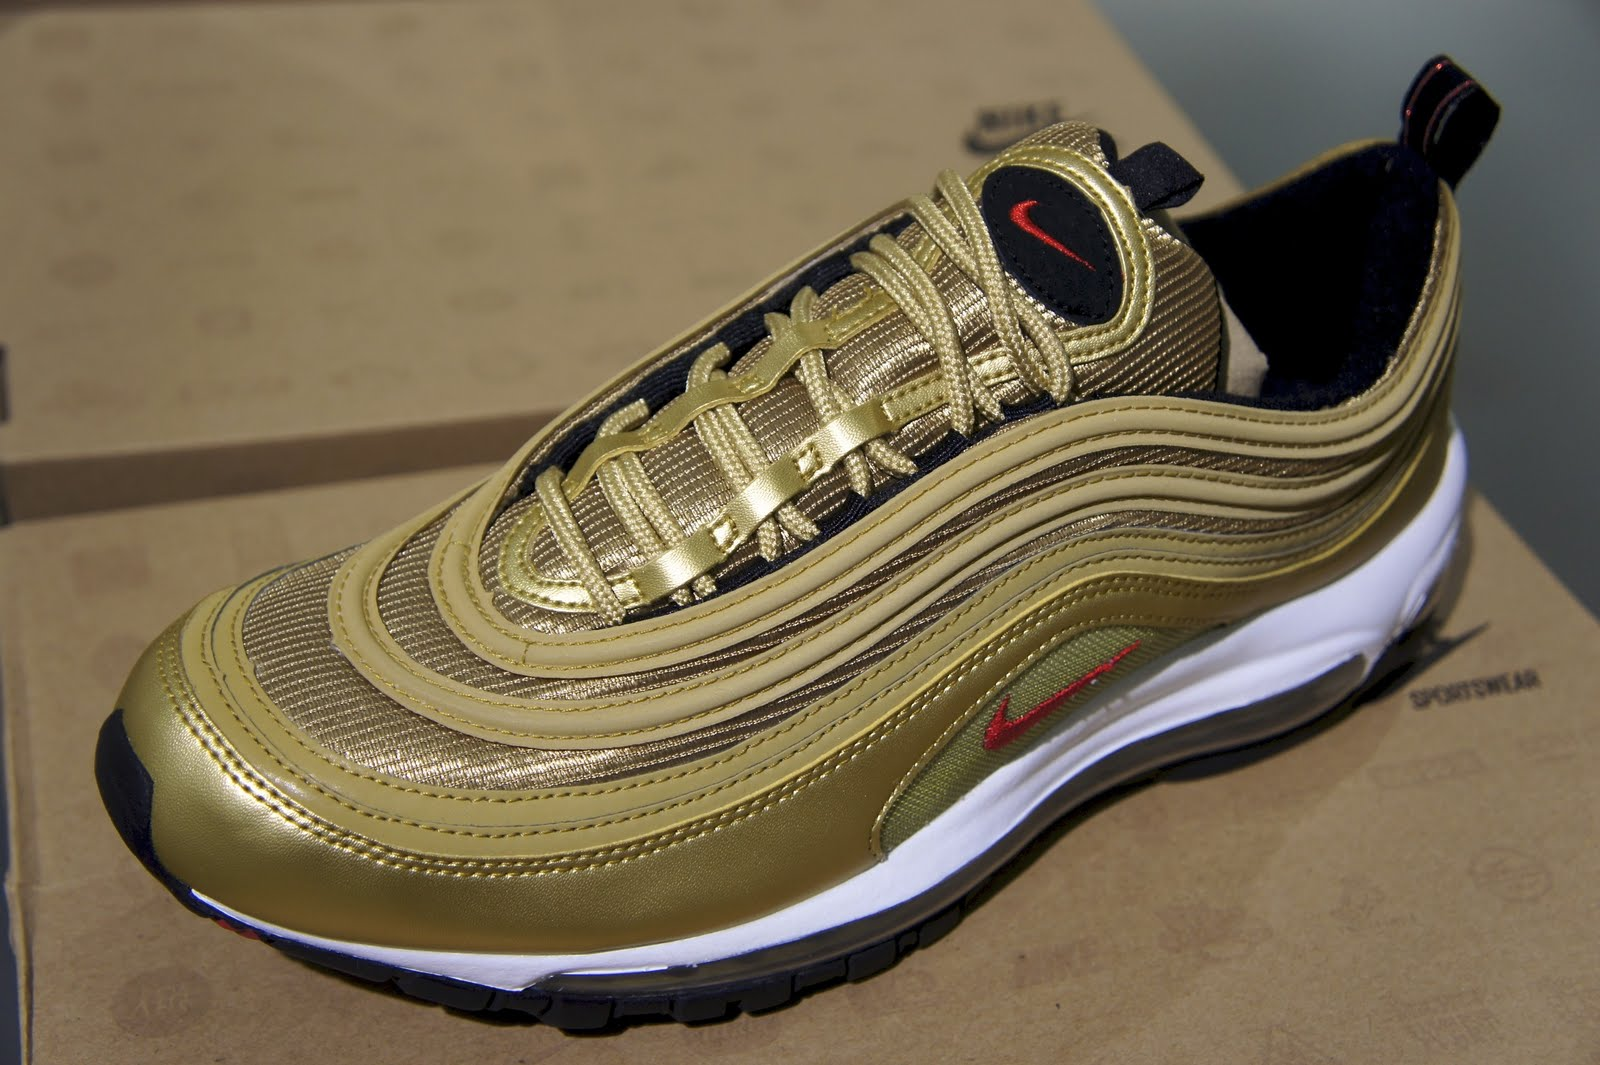 Cheap Nike Air Max 97 Metallic Gold Dead Stock Sneakerblog